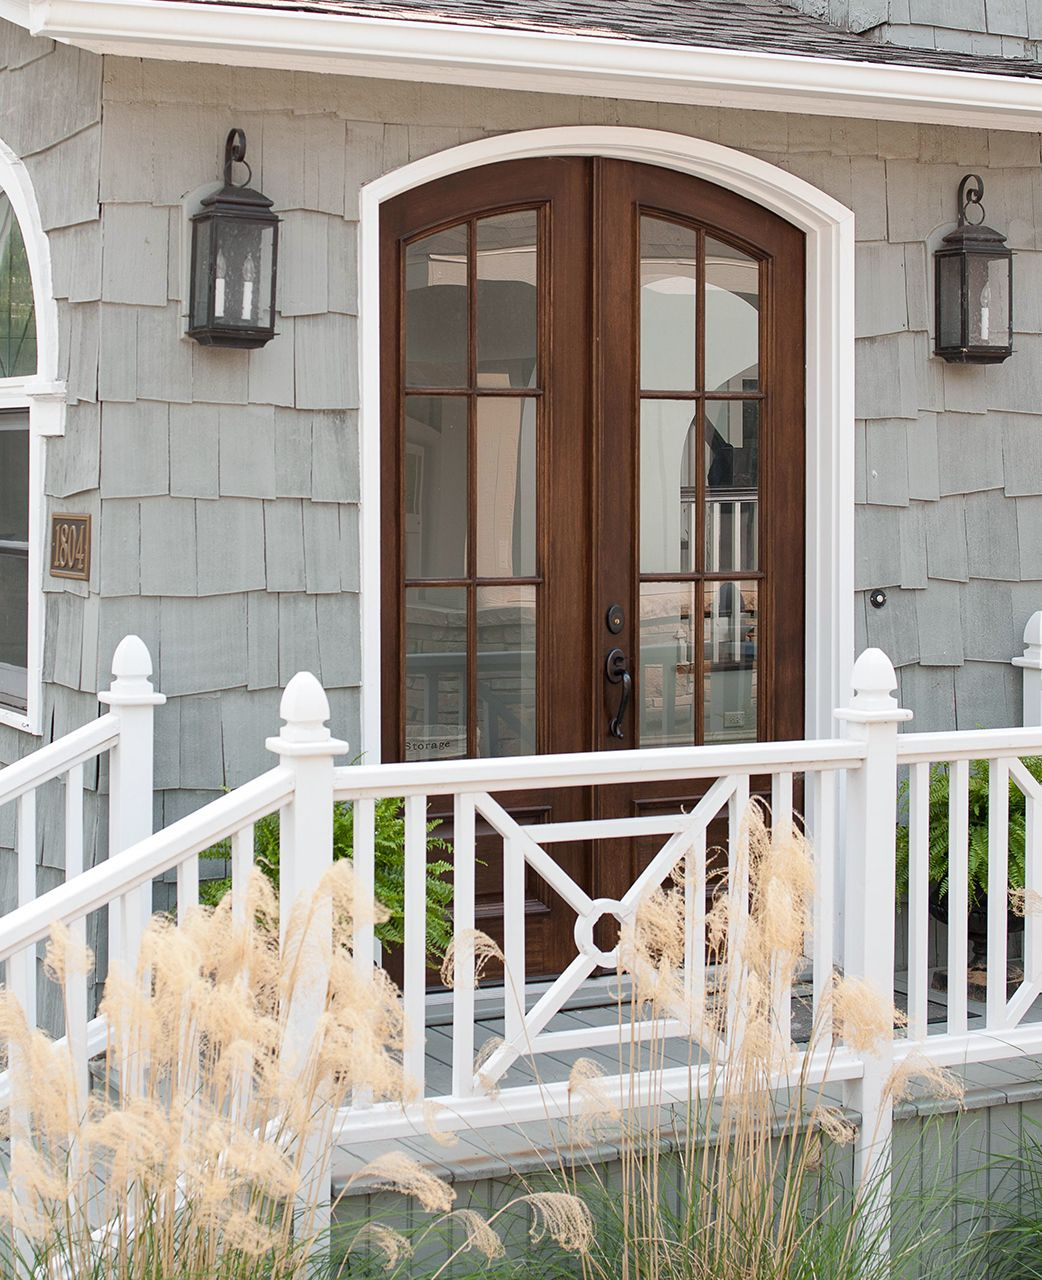 decorative interior stair railing kits ideas for.htm pin on pretty patios  porches  and pergolas  pin on pretty patios  porches  and pergolas